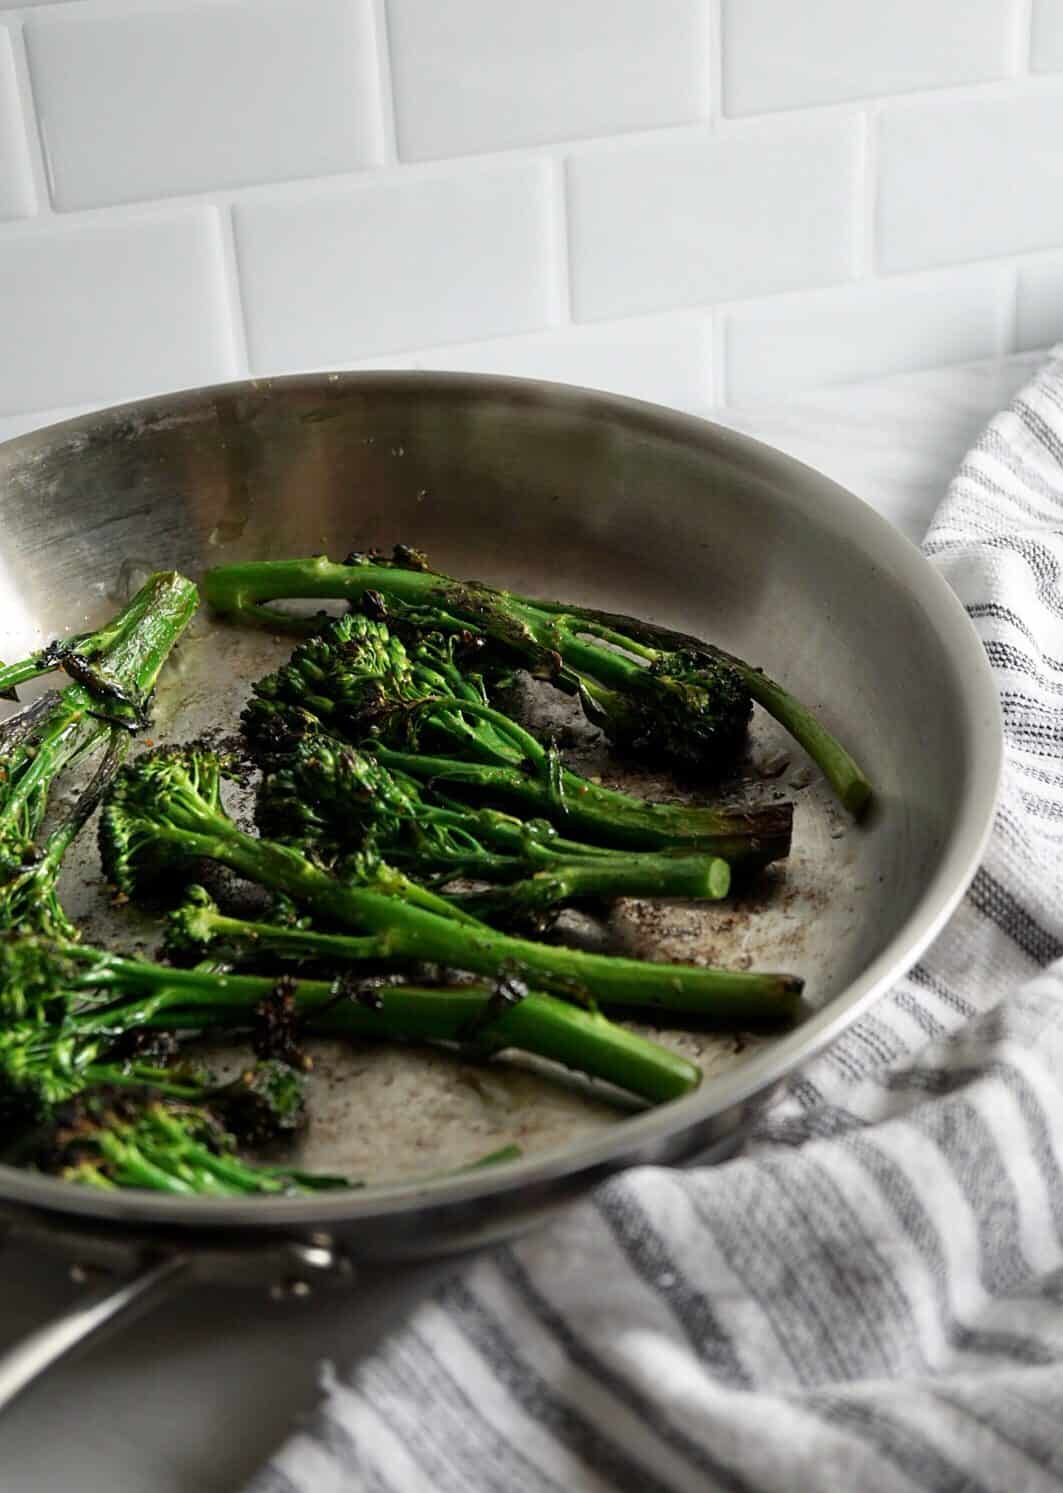 Broccolini in a silver skillet with a striped towel